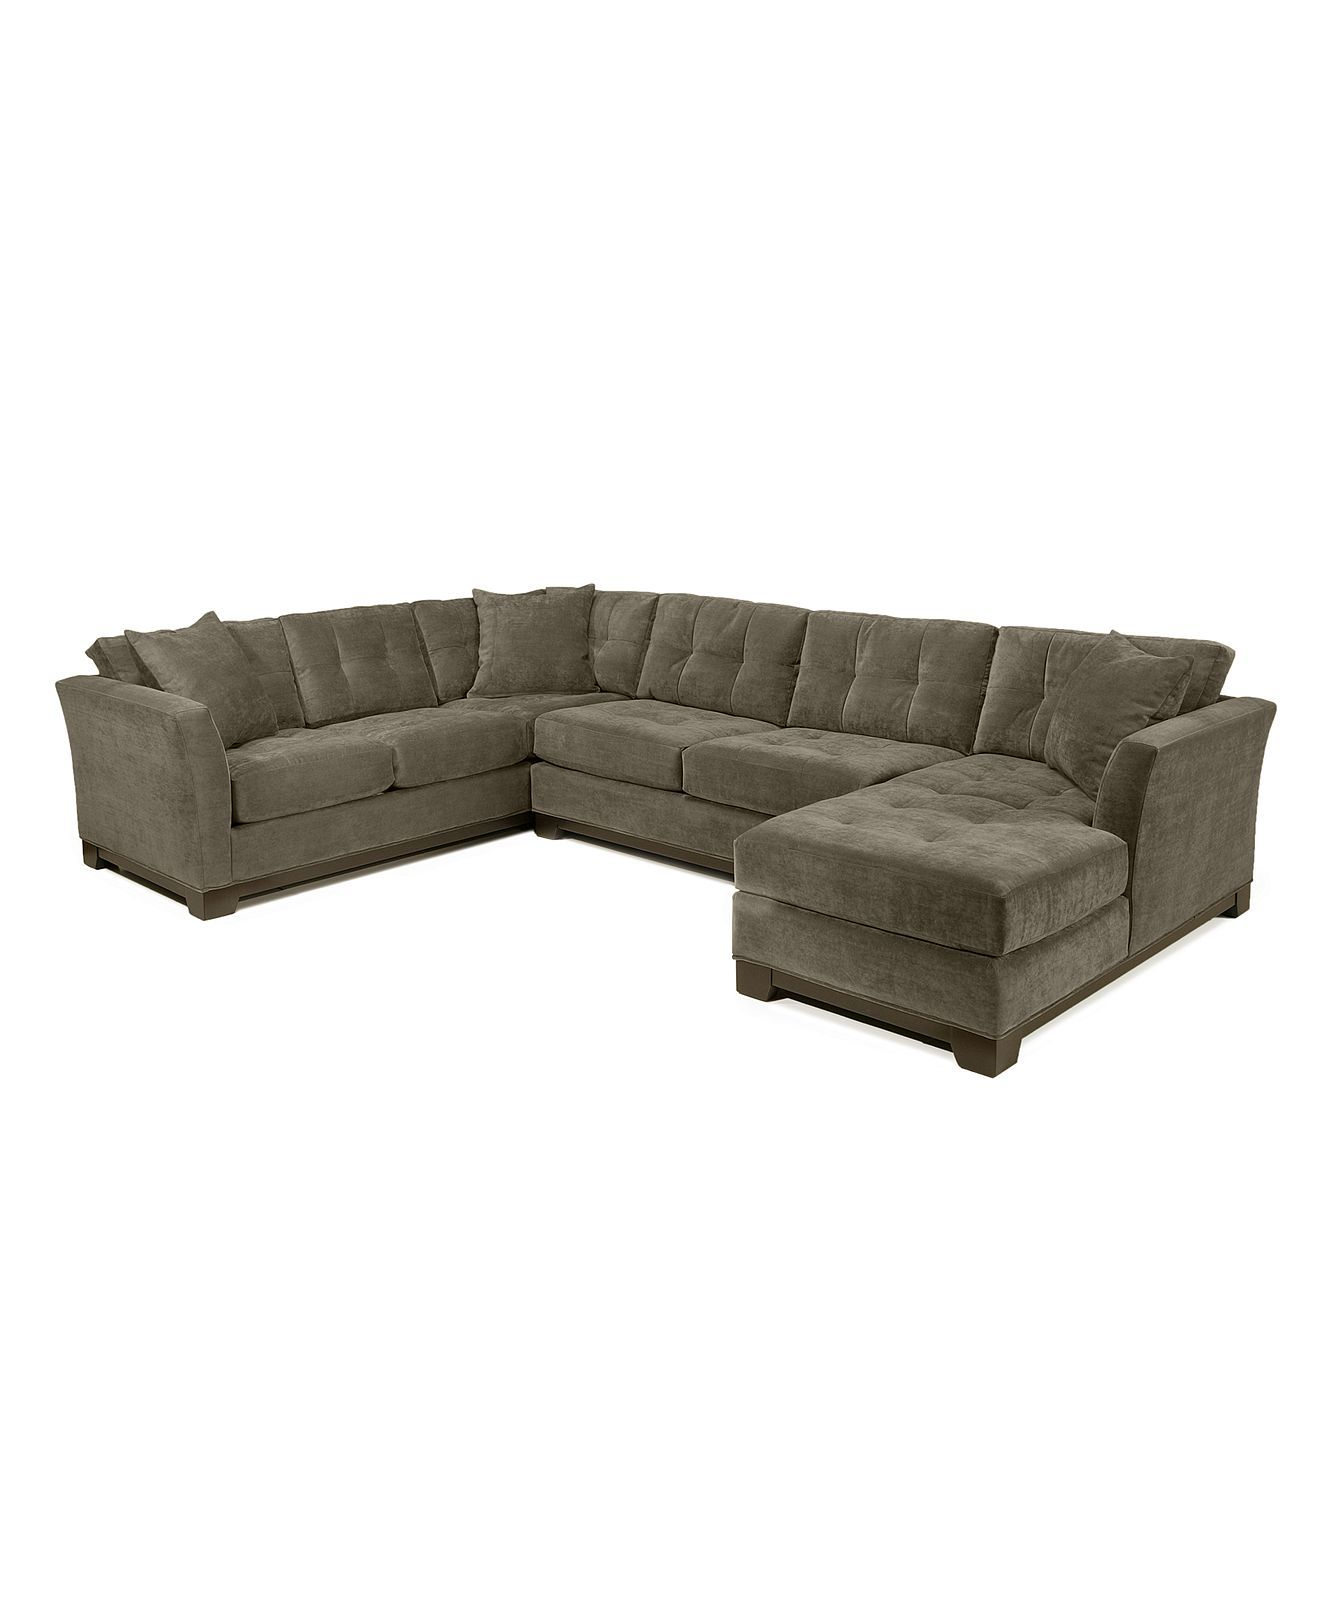 3 Piece Microfiber Sectional Sofa With Chaise 2 Seater And Chairs Closeout Elliot Fabric